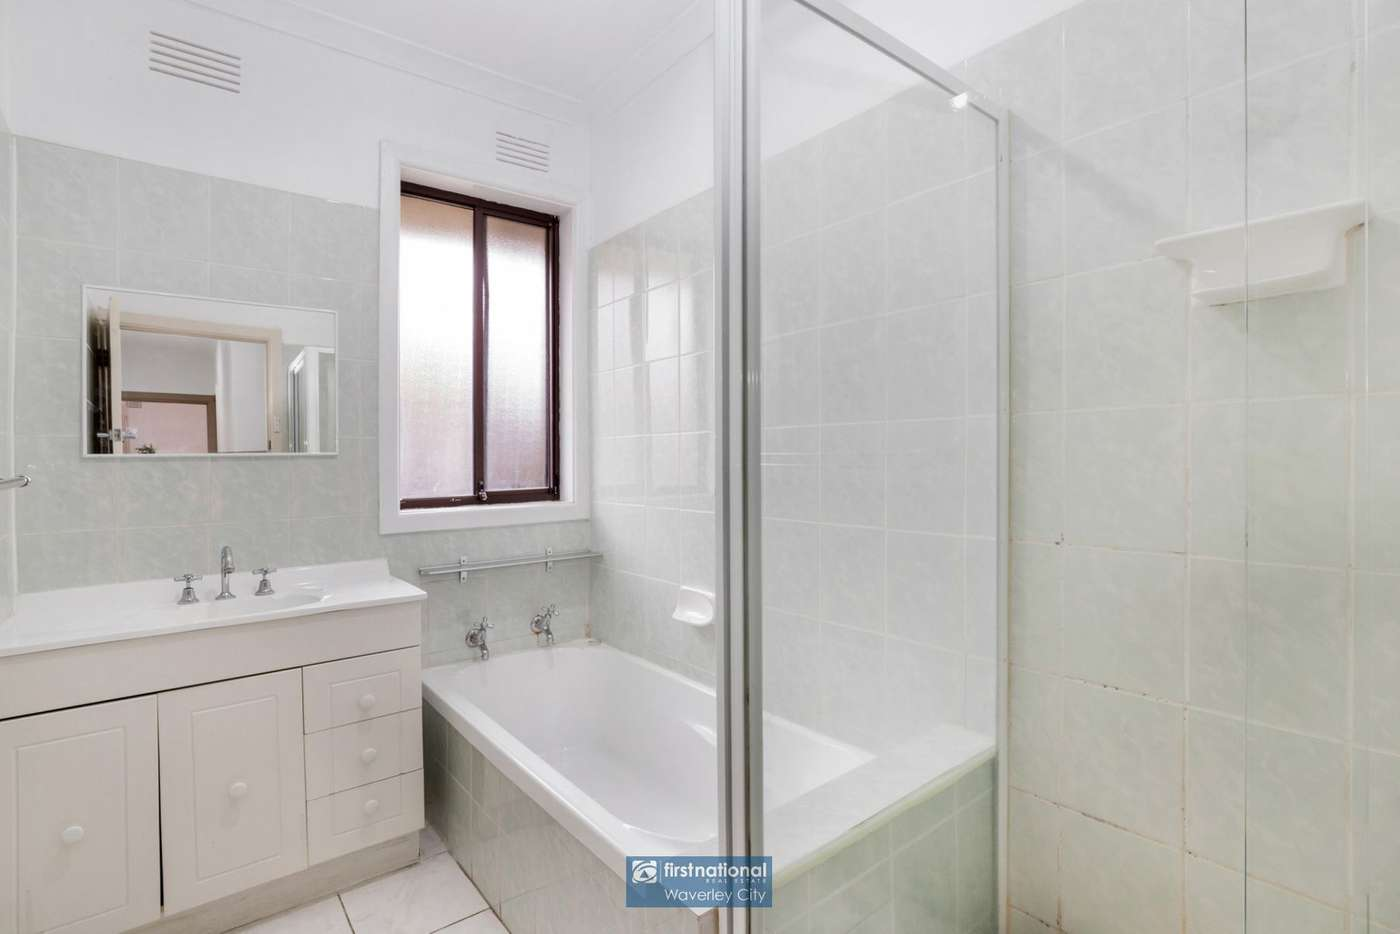 Fifth view of Homely unit listing, 1/29 Bevis Street, Mulgrave VIC 3170